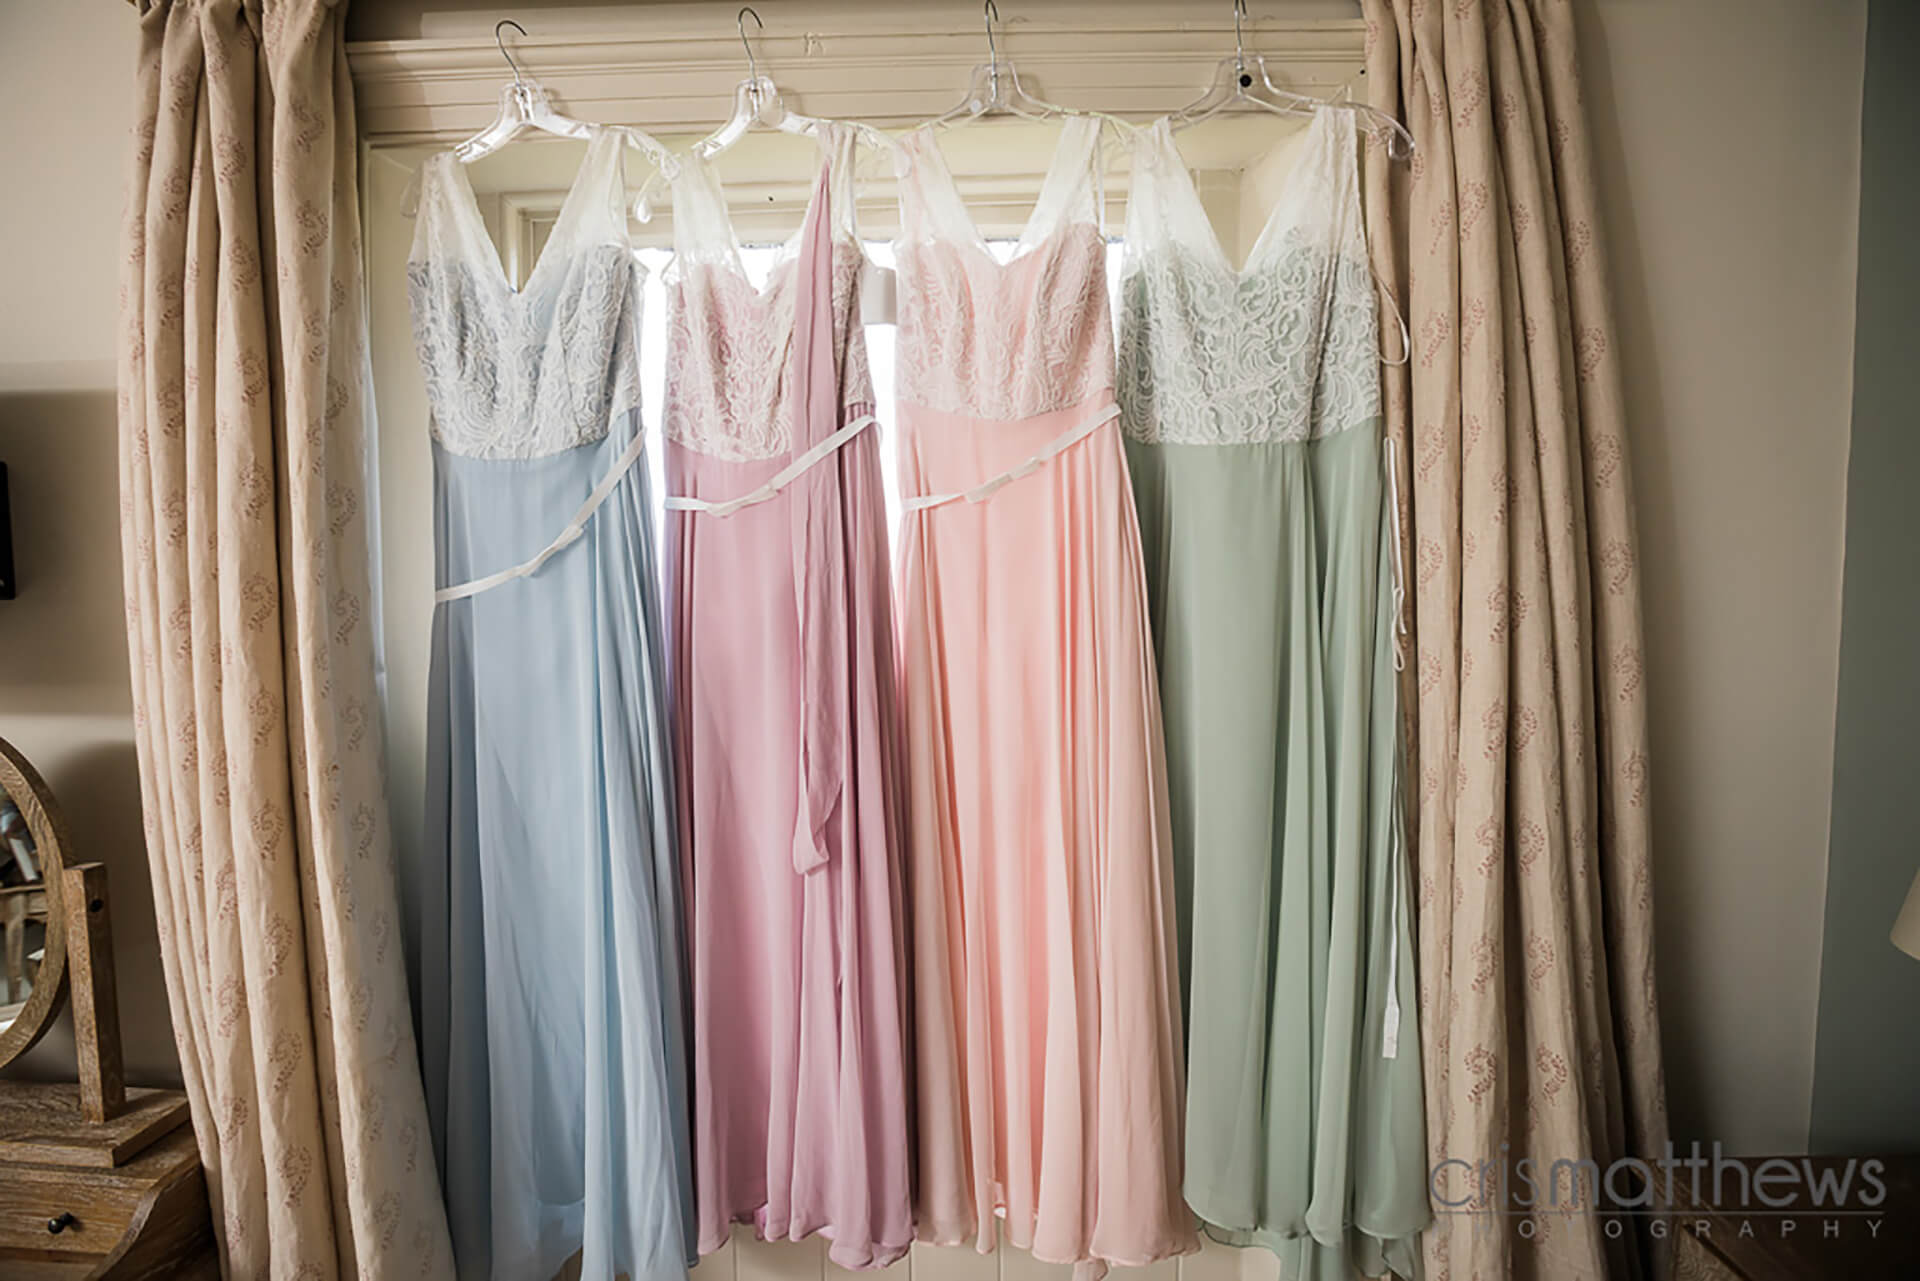 "All the pastel shades captured by <a href=""http://www.crismatthews.com/"">Chris Matthews Photography</a>"